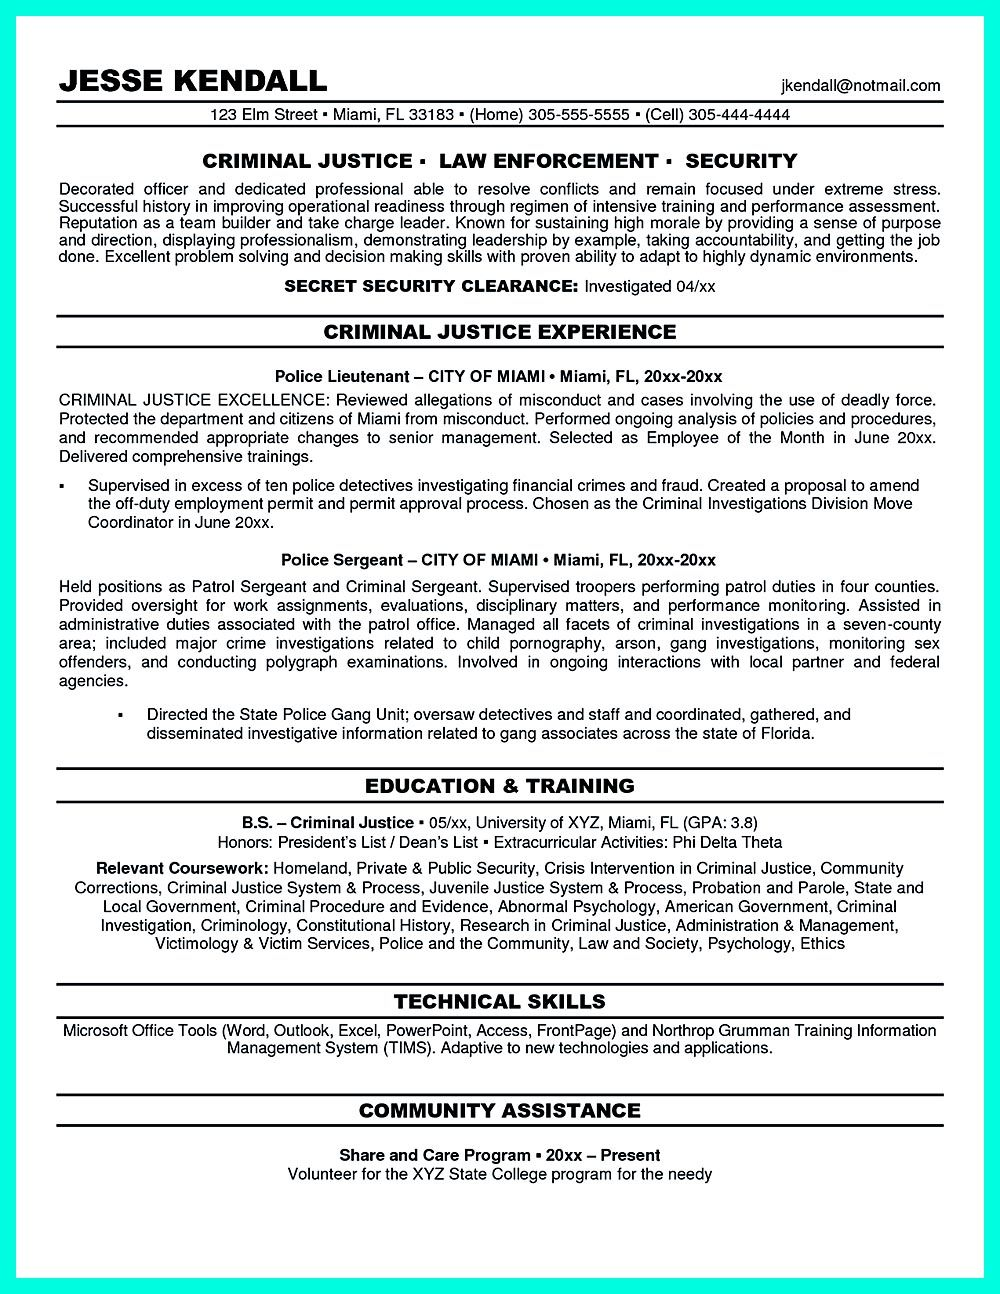 Criminal Justice Resume Uses Summary Section Of The Qualifications To  Highlight Your Experience From The Previous  Resume Skills Summary